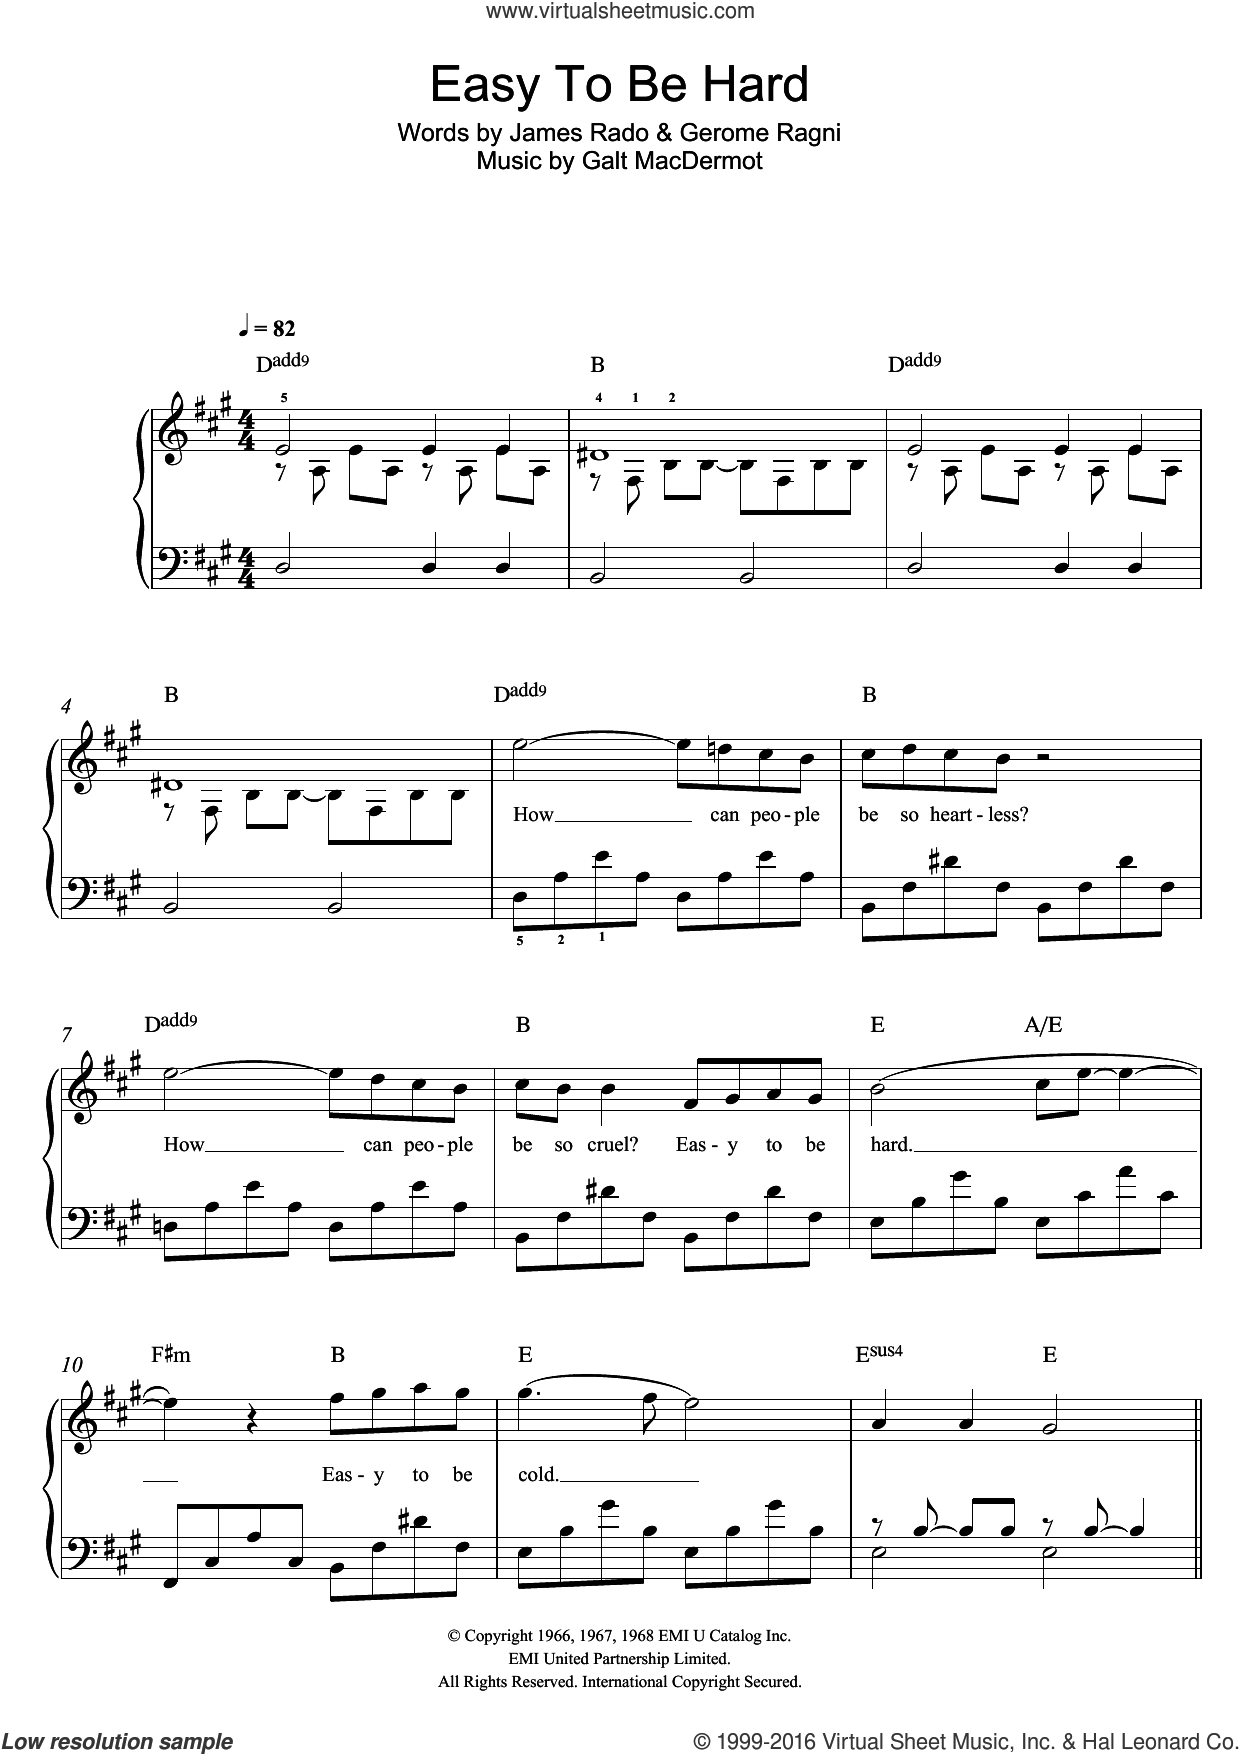 Easy To Be Hard (from 'Hair') sheet music for piano solo by James Rado, Galt MacDermot and Gerome Ragni. Score Image Preview.